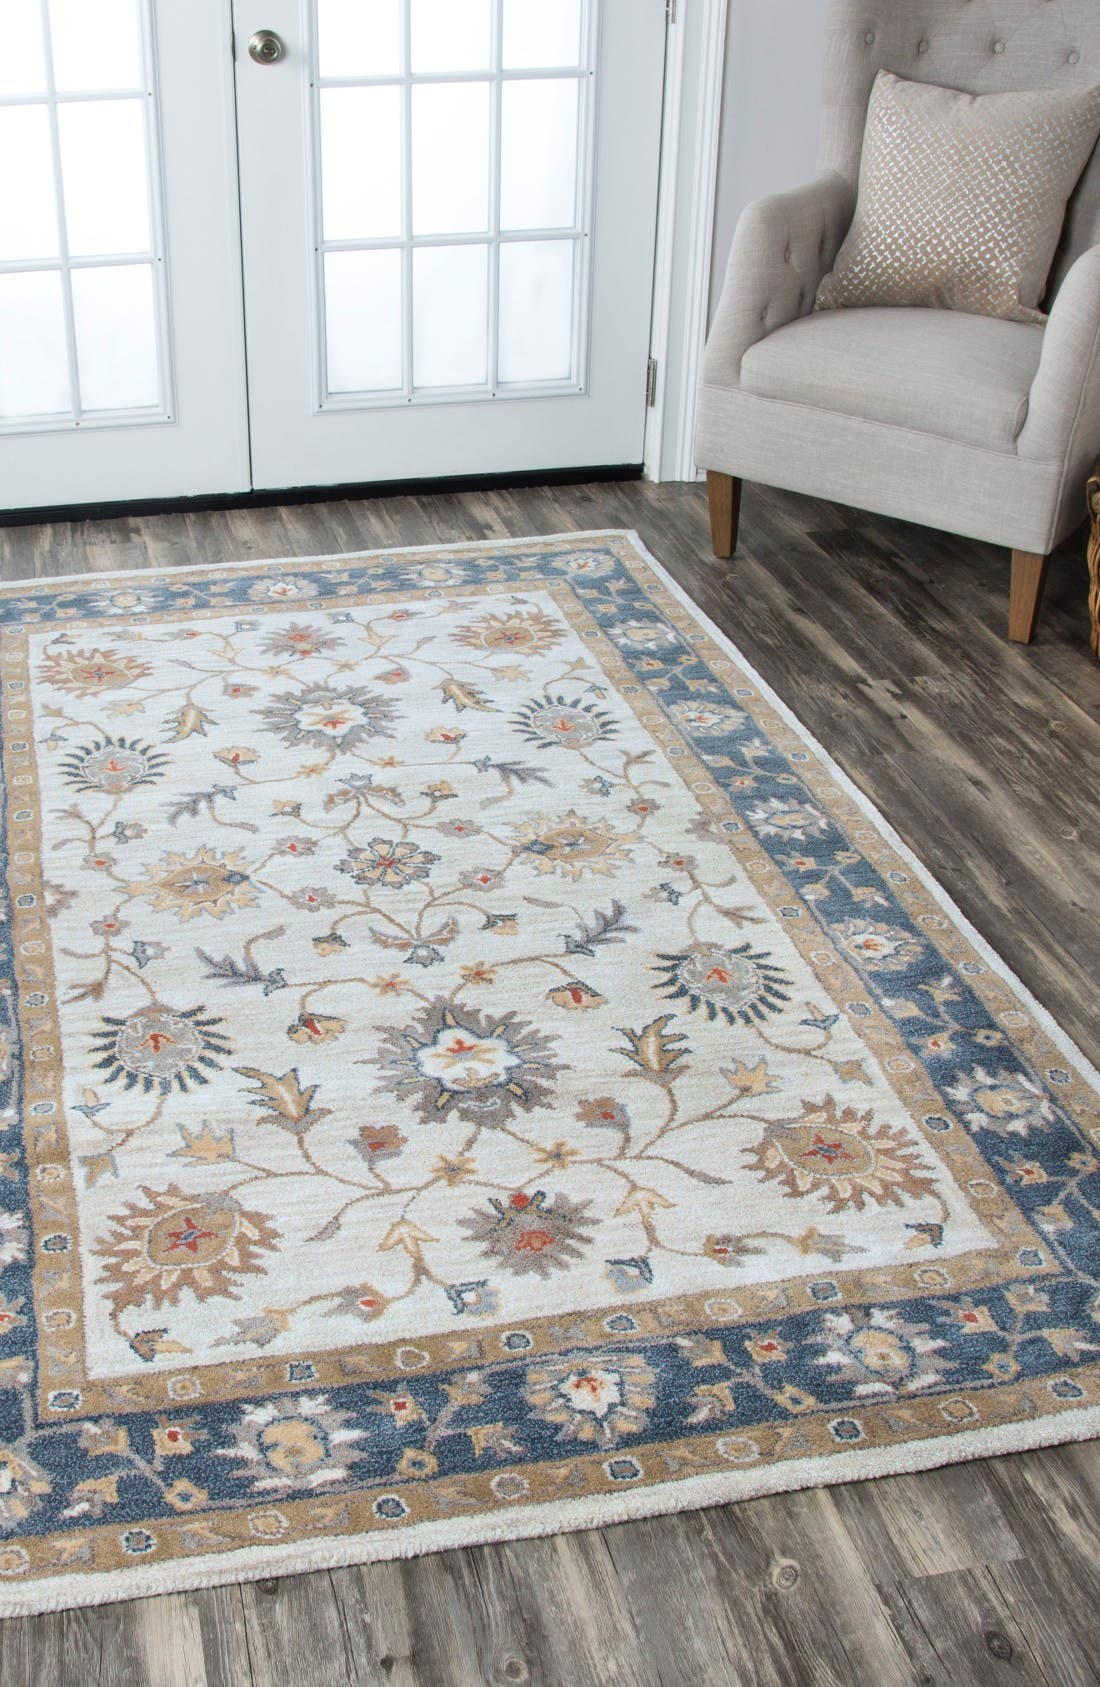 'Valintino Border' Hand Tufted Wool Area Rug,                             Alternate thumbnail 4, color,                             Taupe